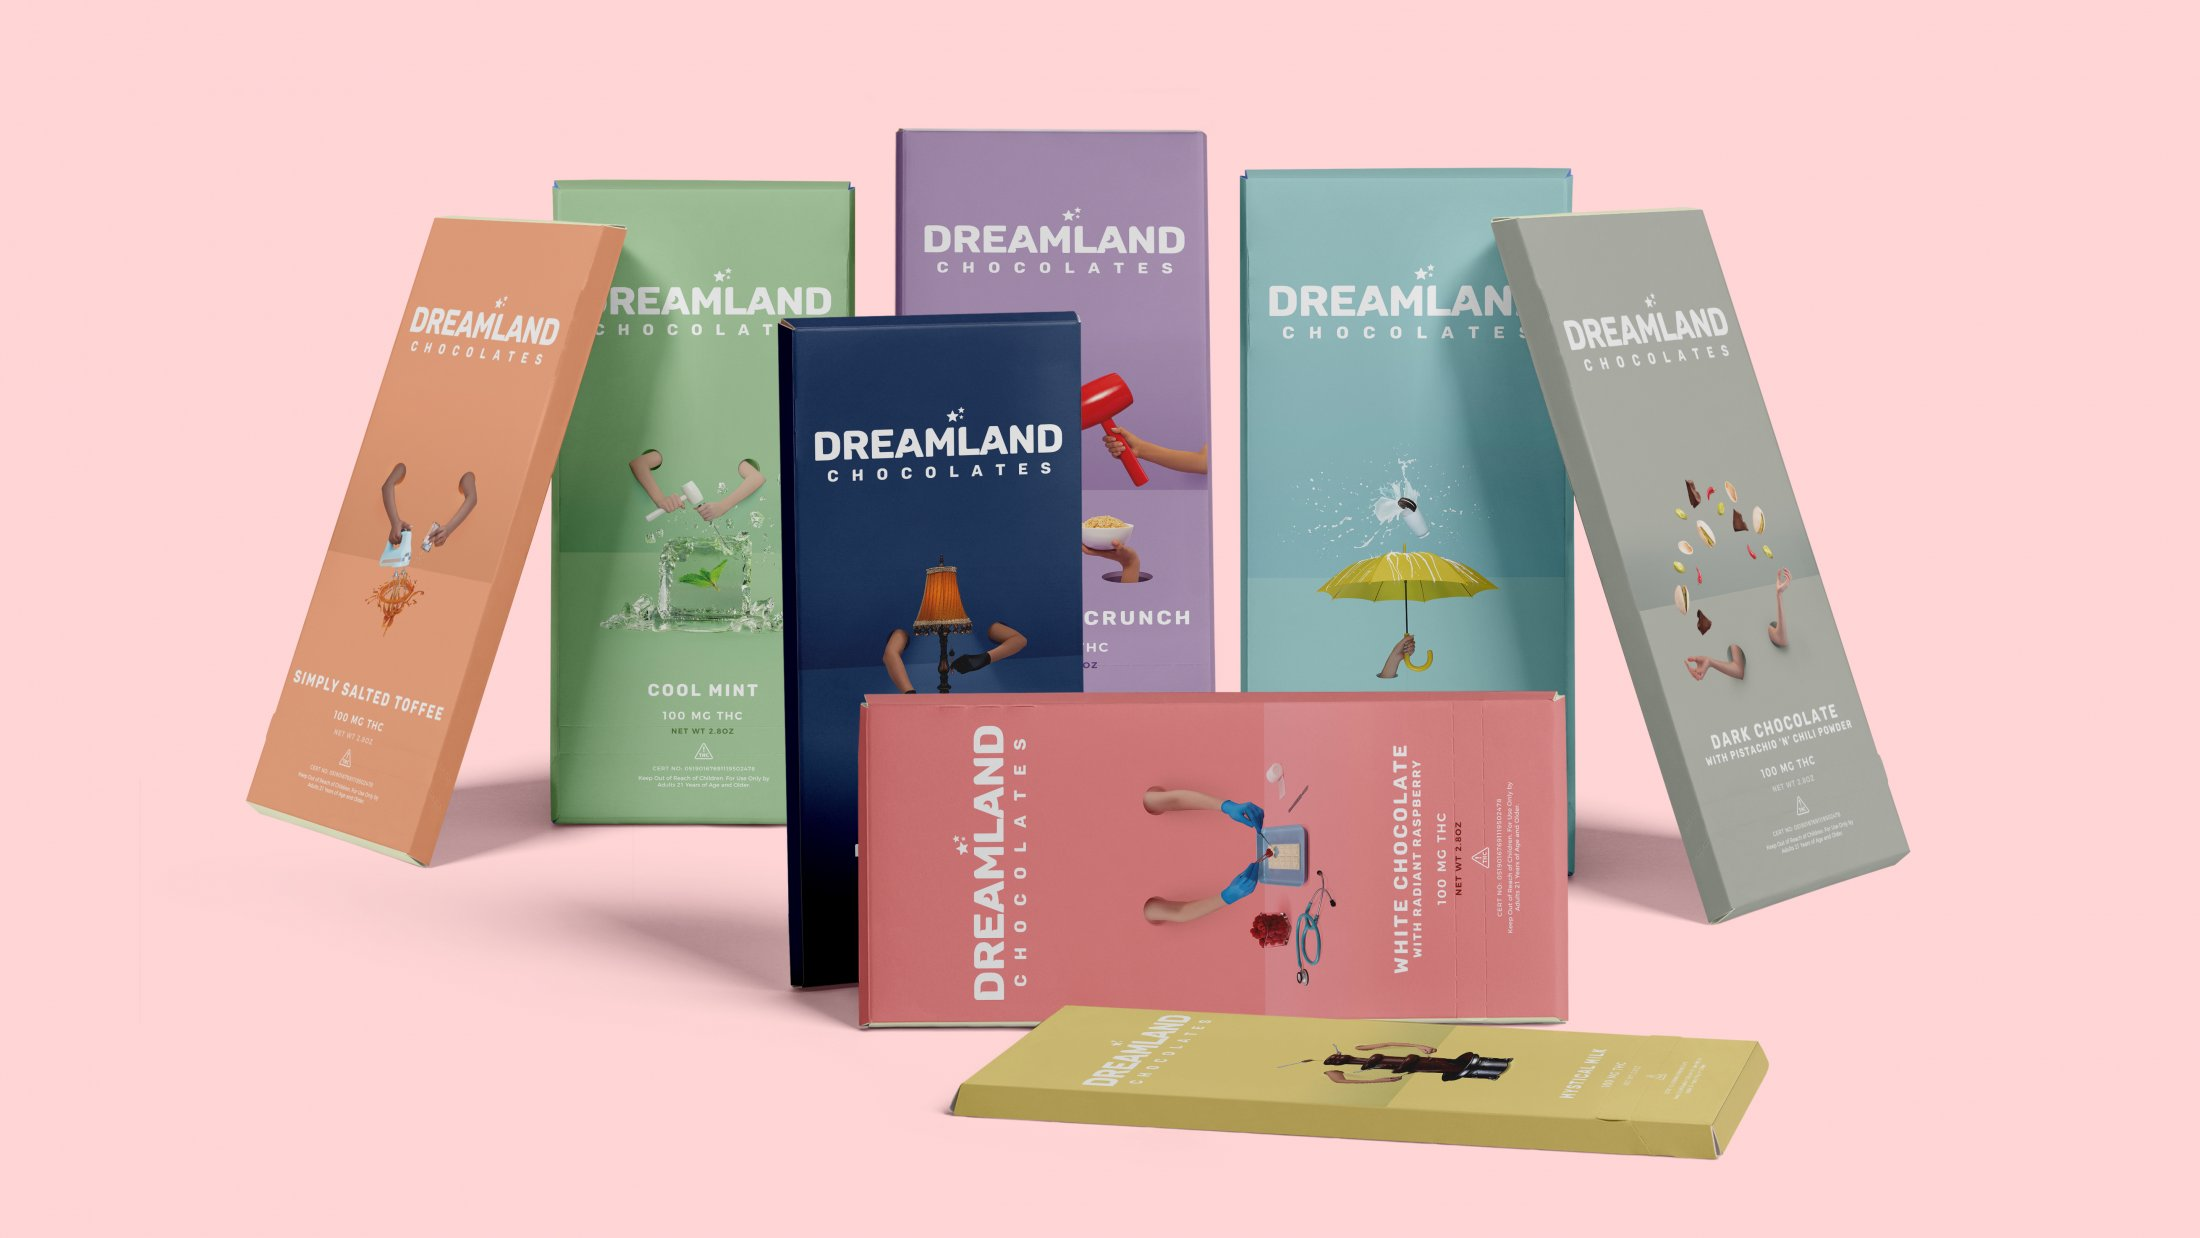 Dreamland Chocolates: Real People. Real Props. Surreal Packaging.